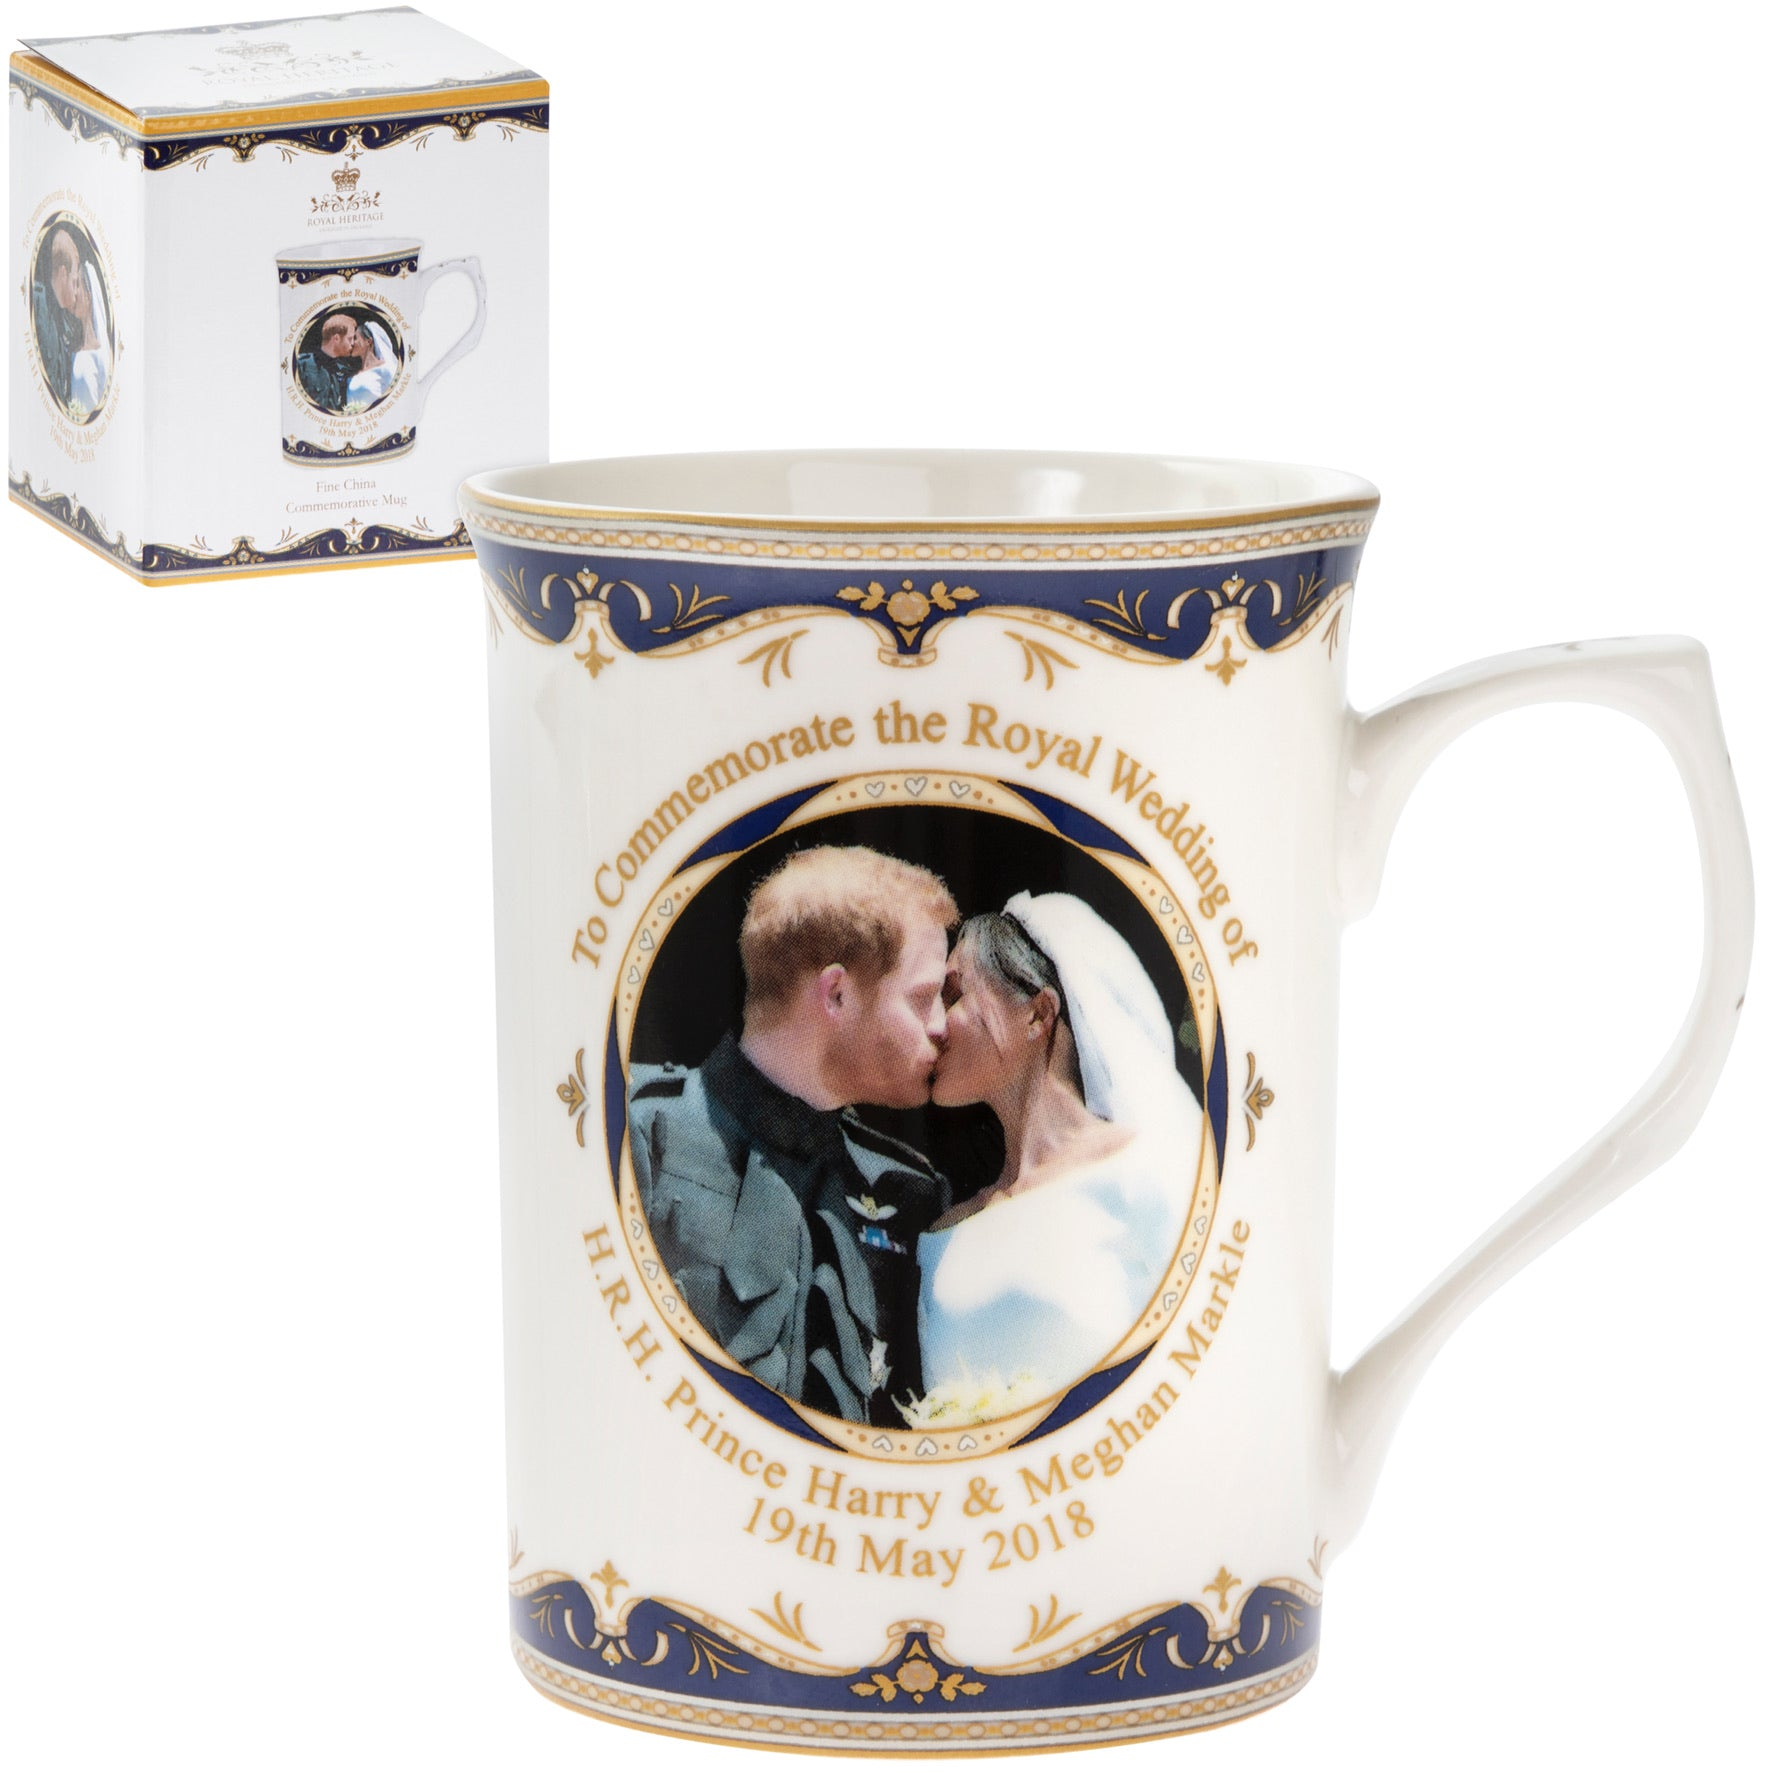 Royal Wedding Lap Tray Discount When Buying a Royal Wedding First Kiss Mug